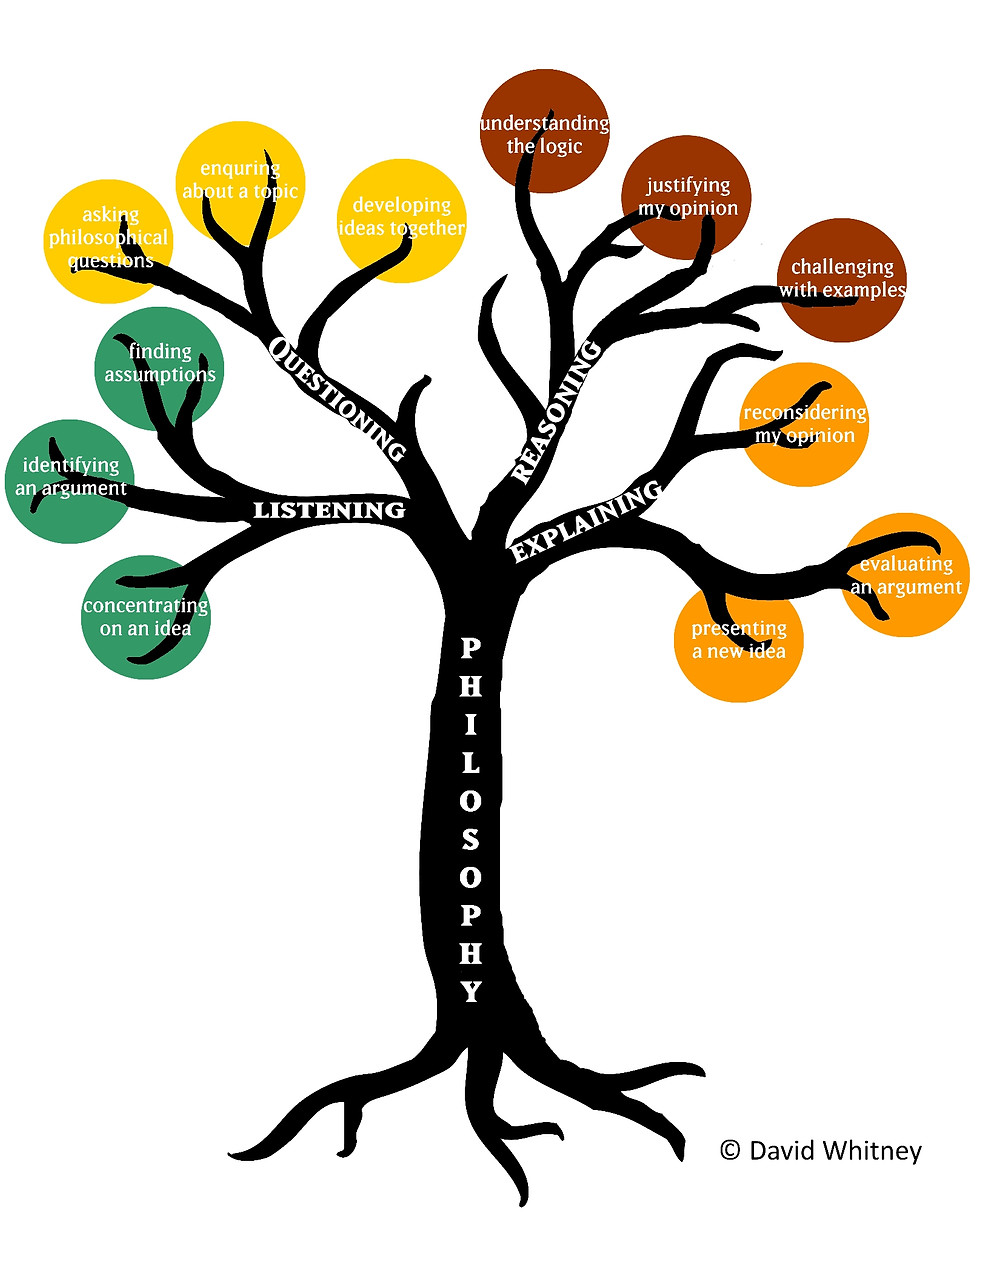 The Philosophy Tree skills framework